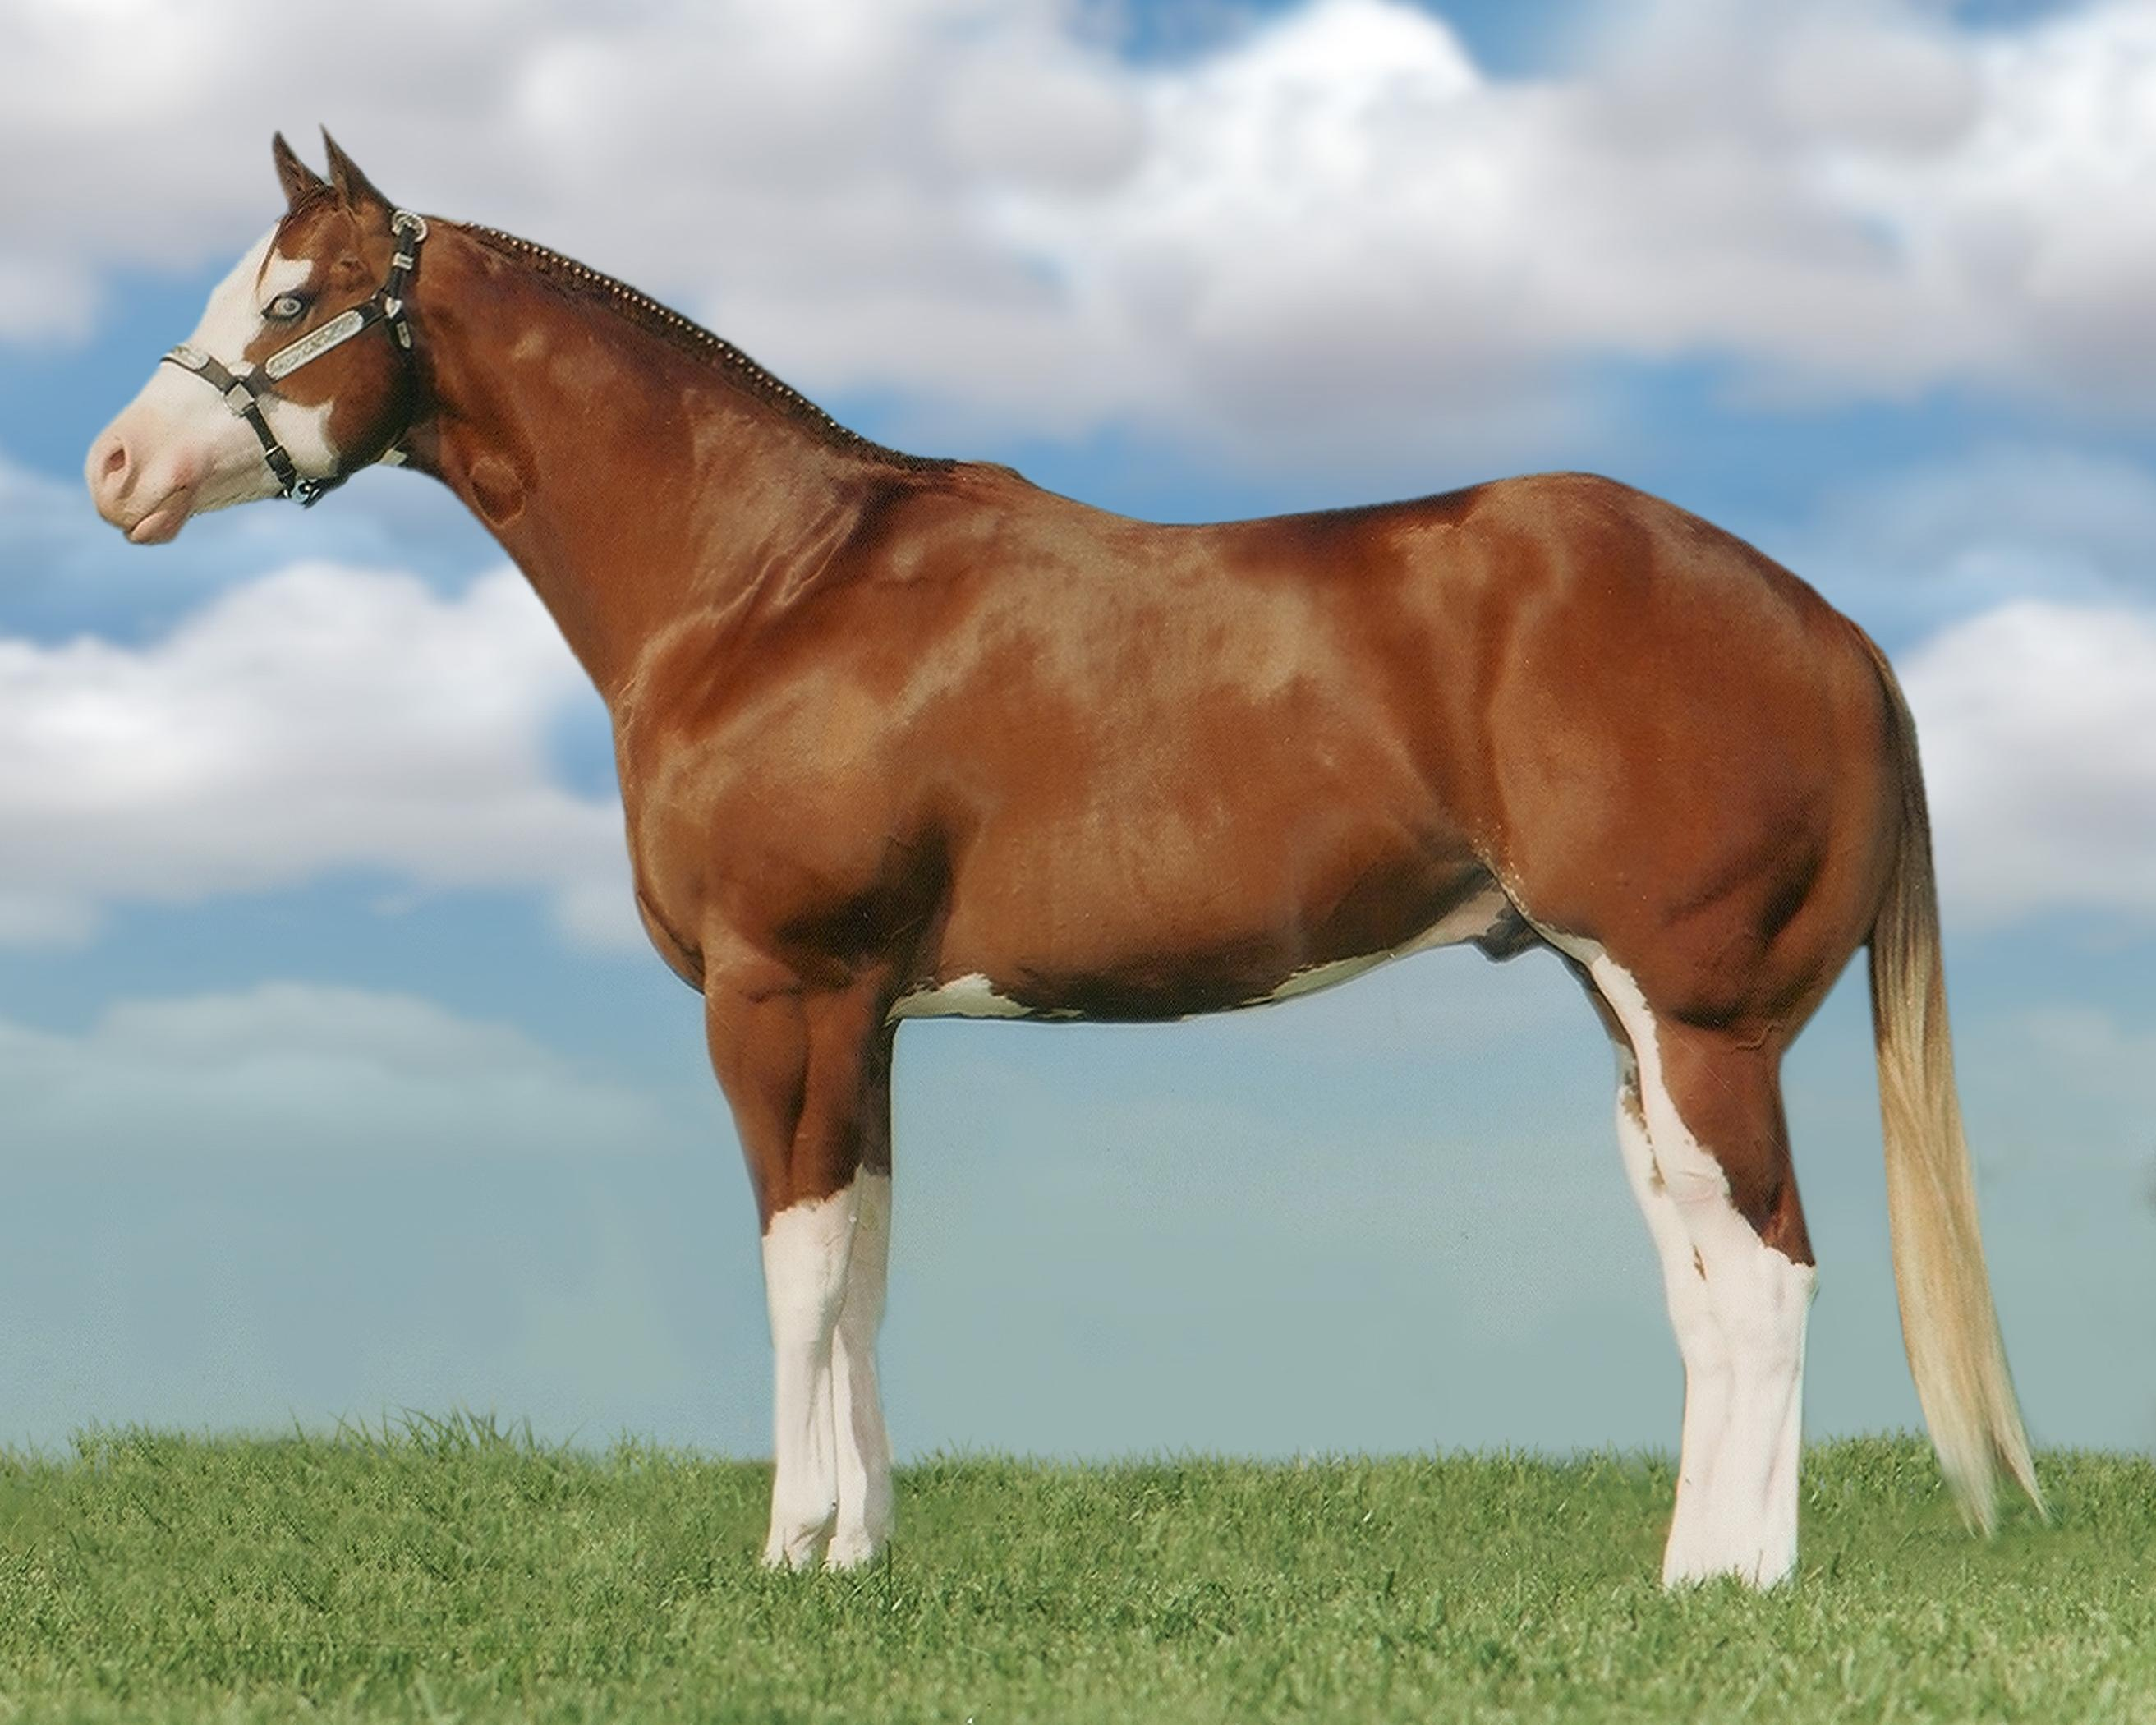 American Paint Horse Wallpapers HD Download 2625x2100